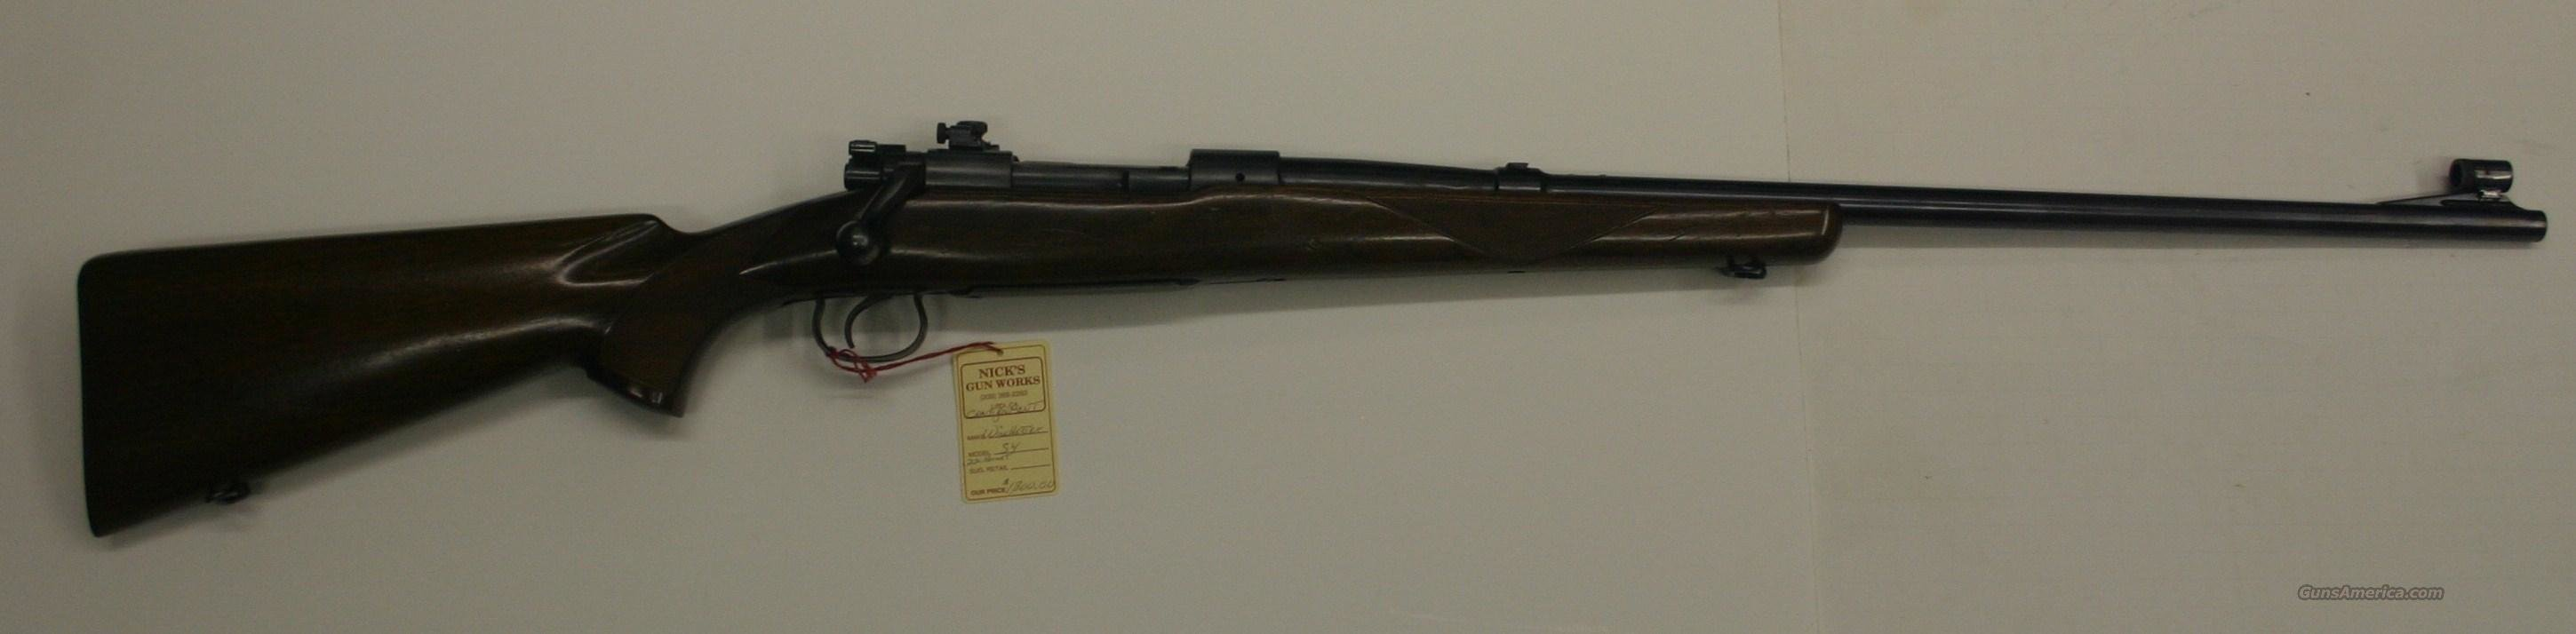 Winchester Model 54 .22 Hornet, Excellent Condition  Guns > Rifles > Winchester Rifles - Modern Bolt/Auto/Single > Other Bolt Action